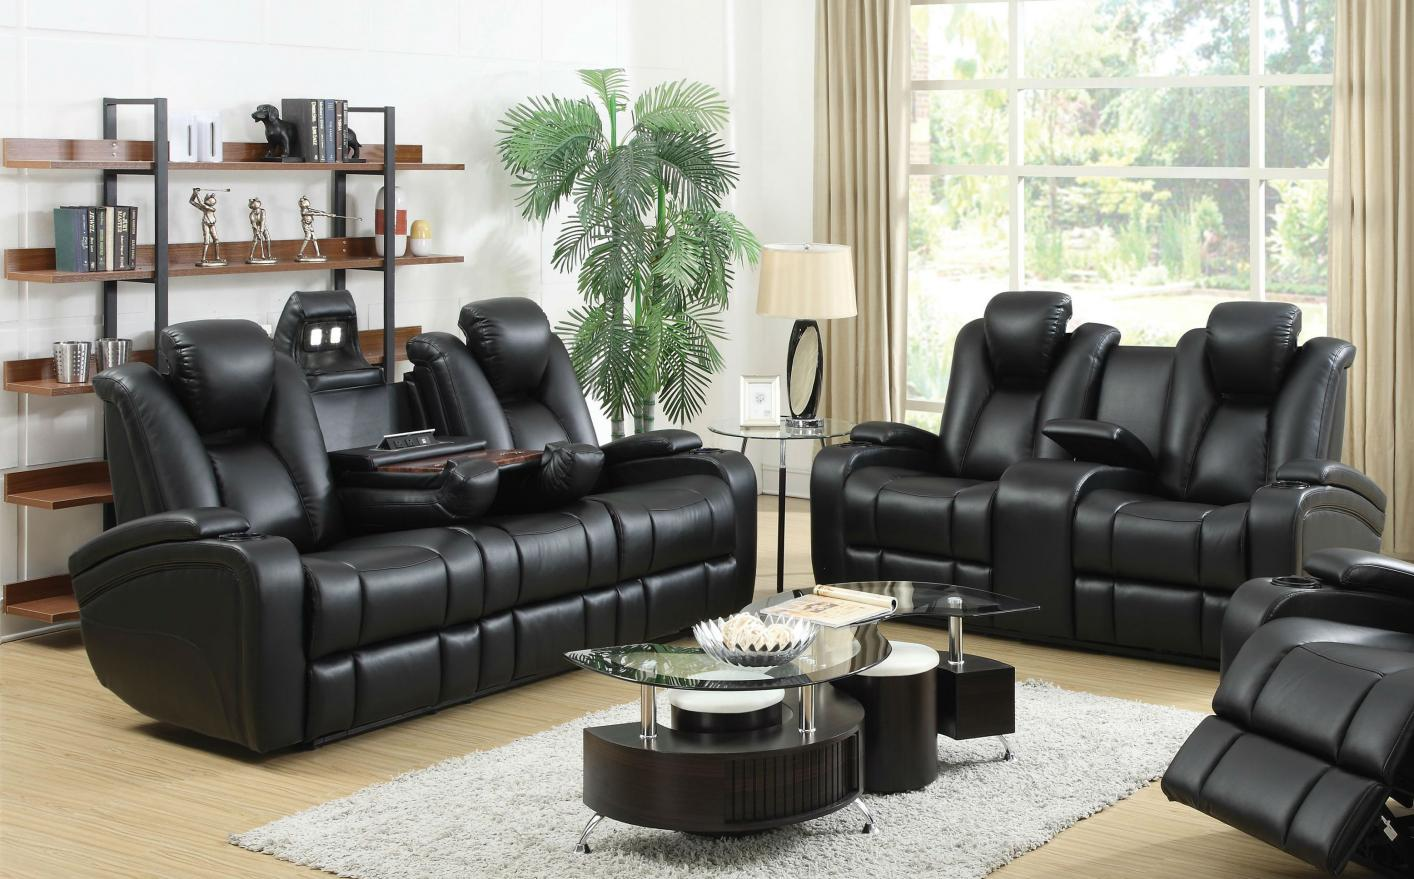 Black Leather Power Reclining Sofa and Loveseat Set - Steal-A-Sofa Furniture  Outlet Los Angeles CA